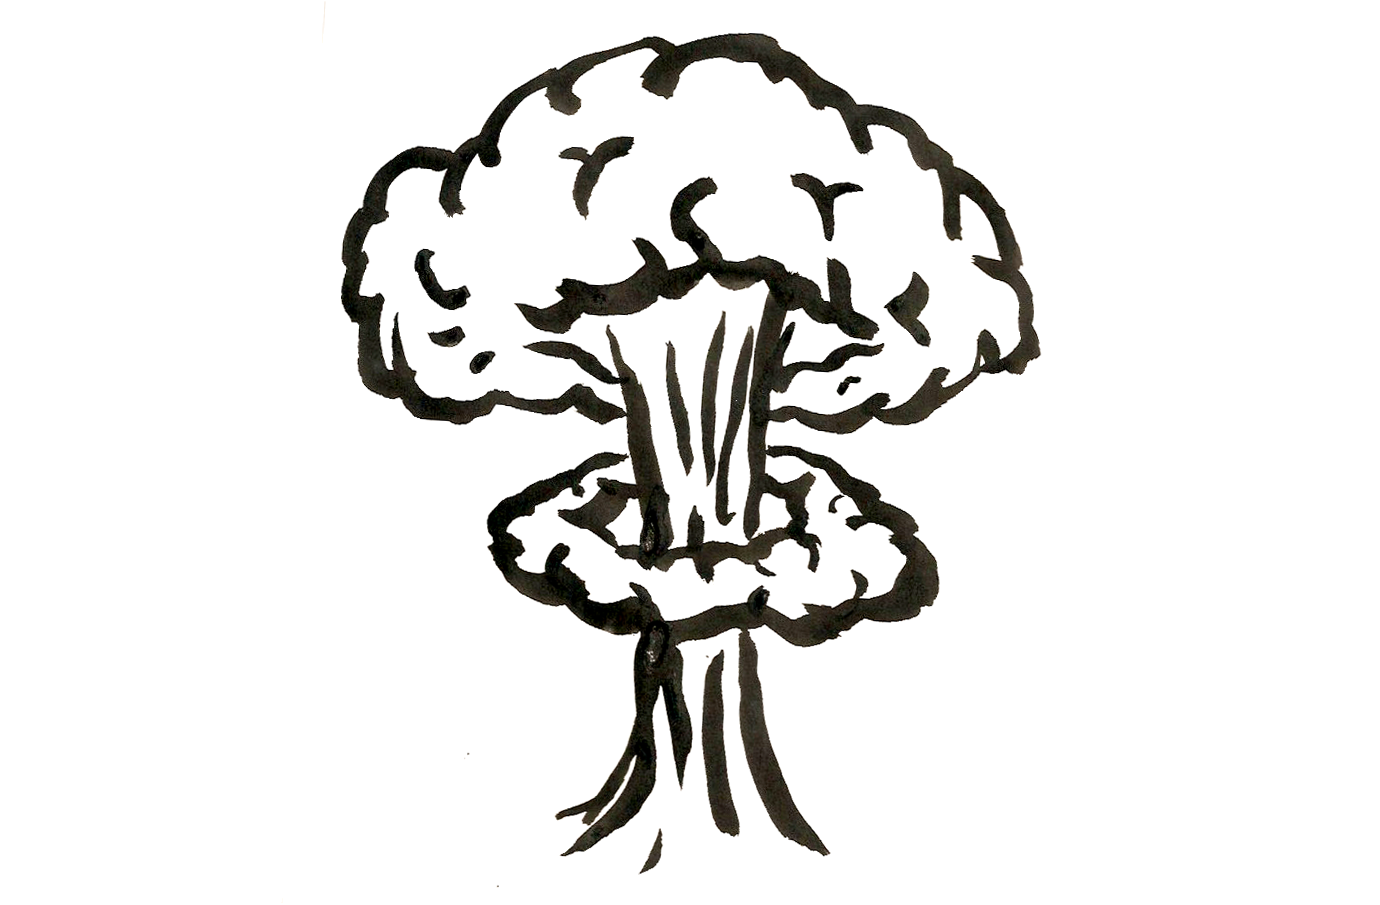 Mushroom cloud silhouette at. Clouds clipart explosion